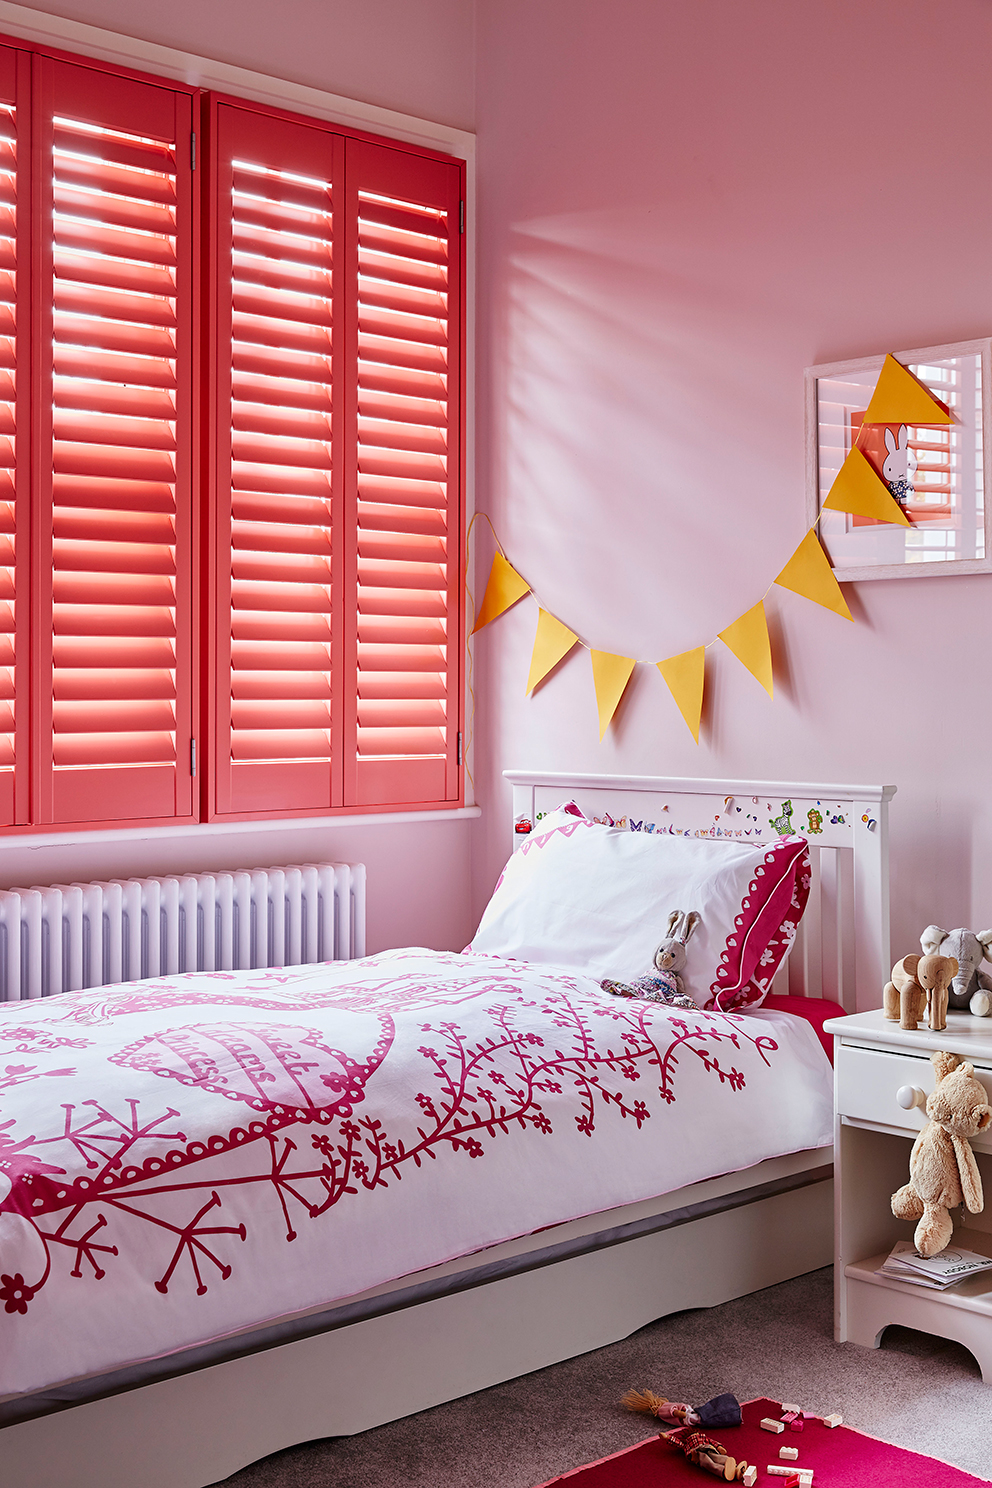 Shutterly Fabulous - French For Pineapple Blog - pink shutters in childs bedroom with yellow bunting